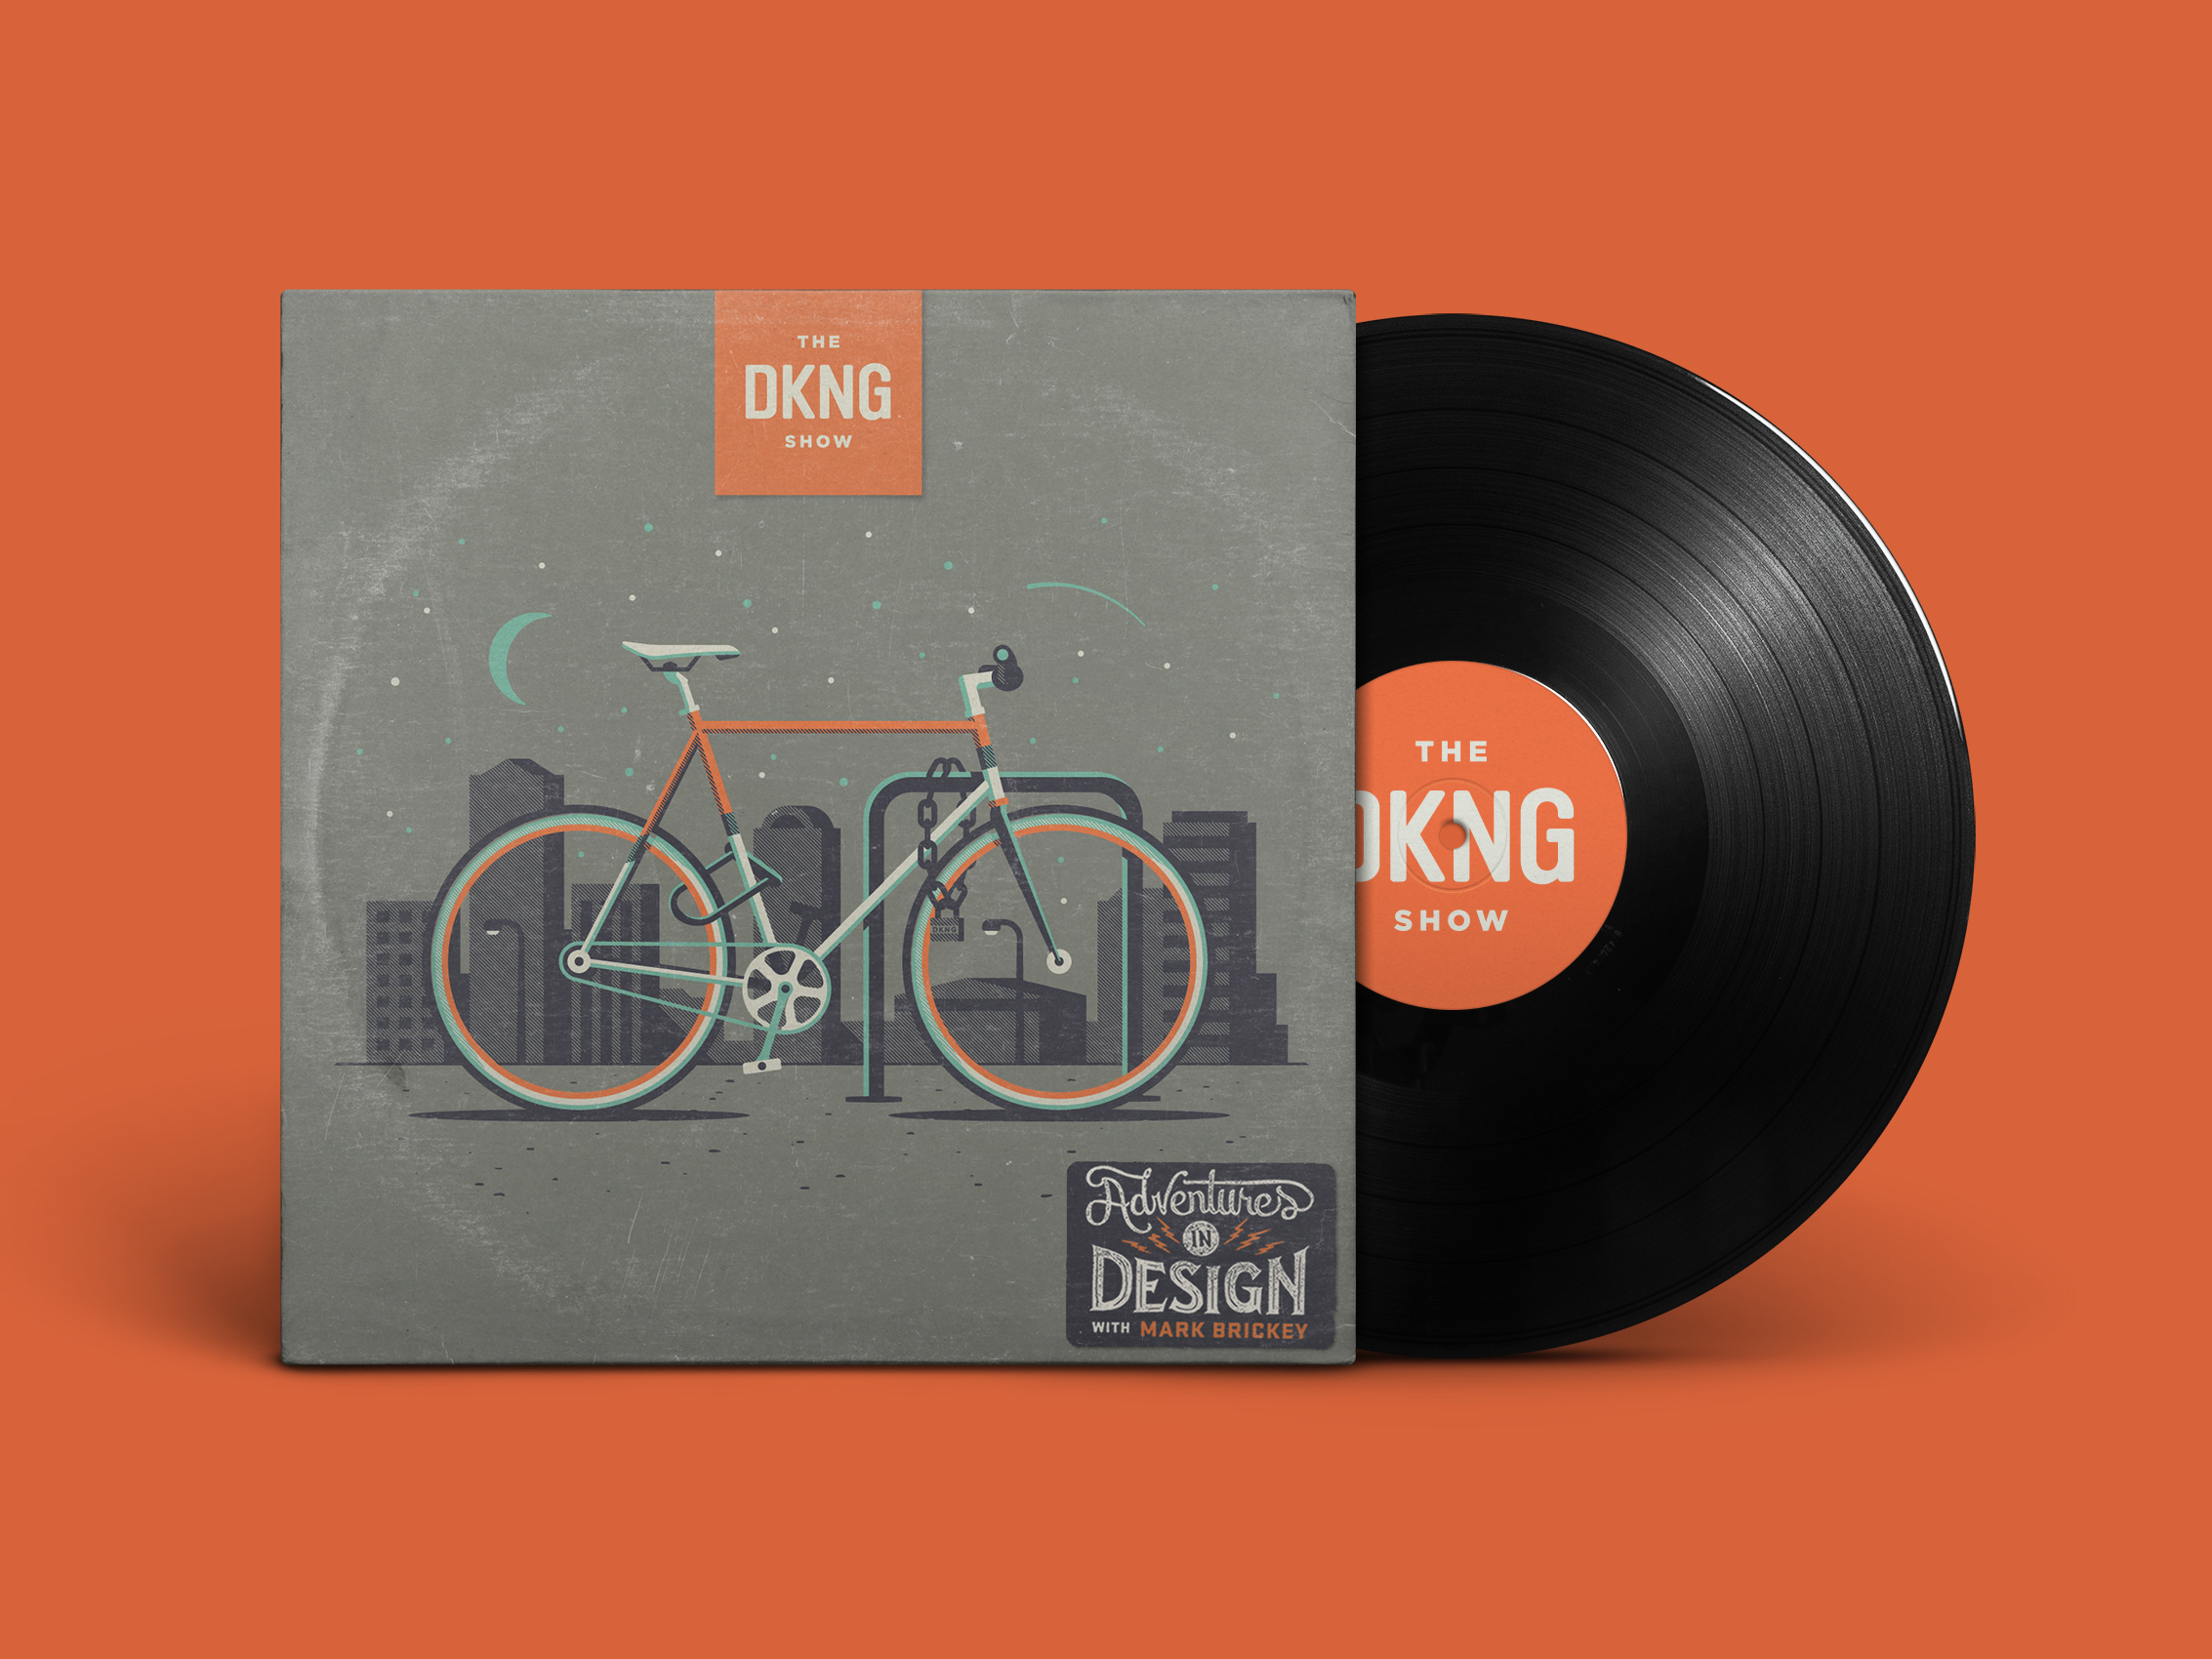 The DKNG Show (Episode 5)